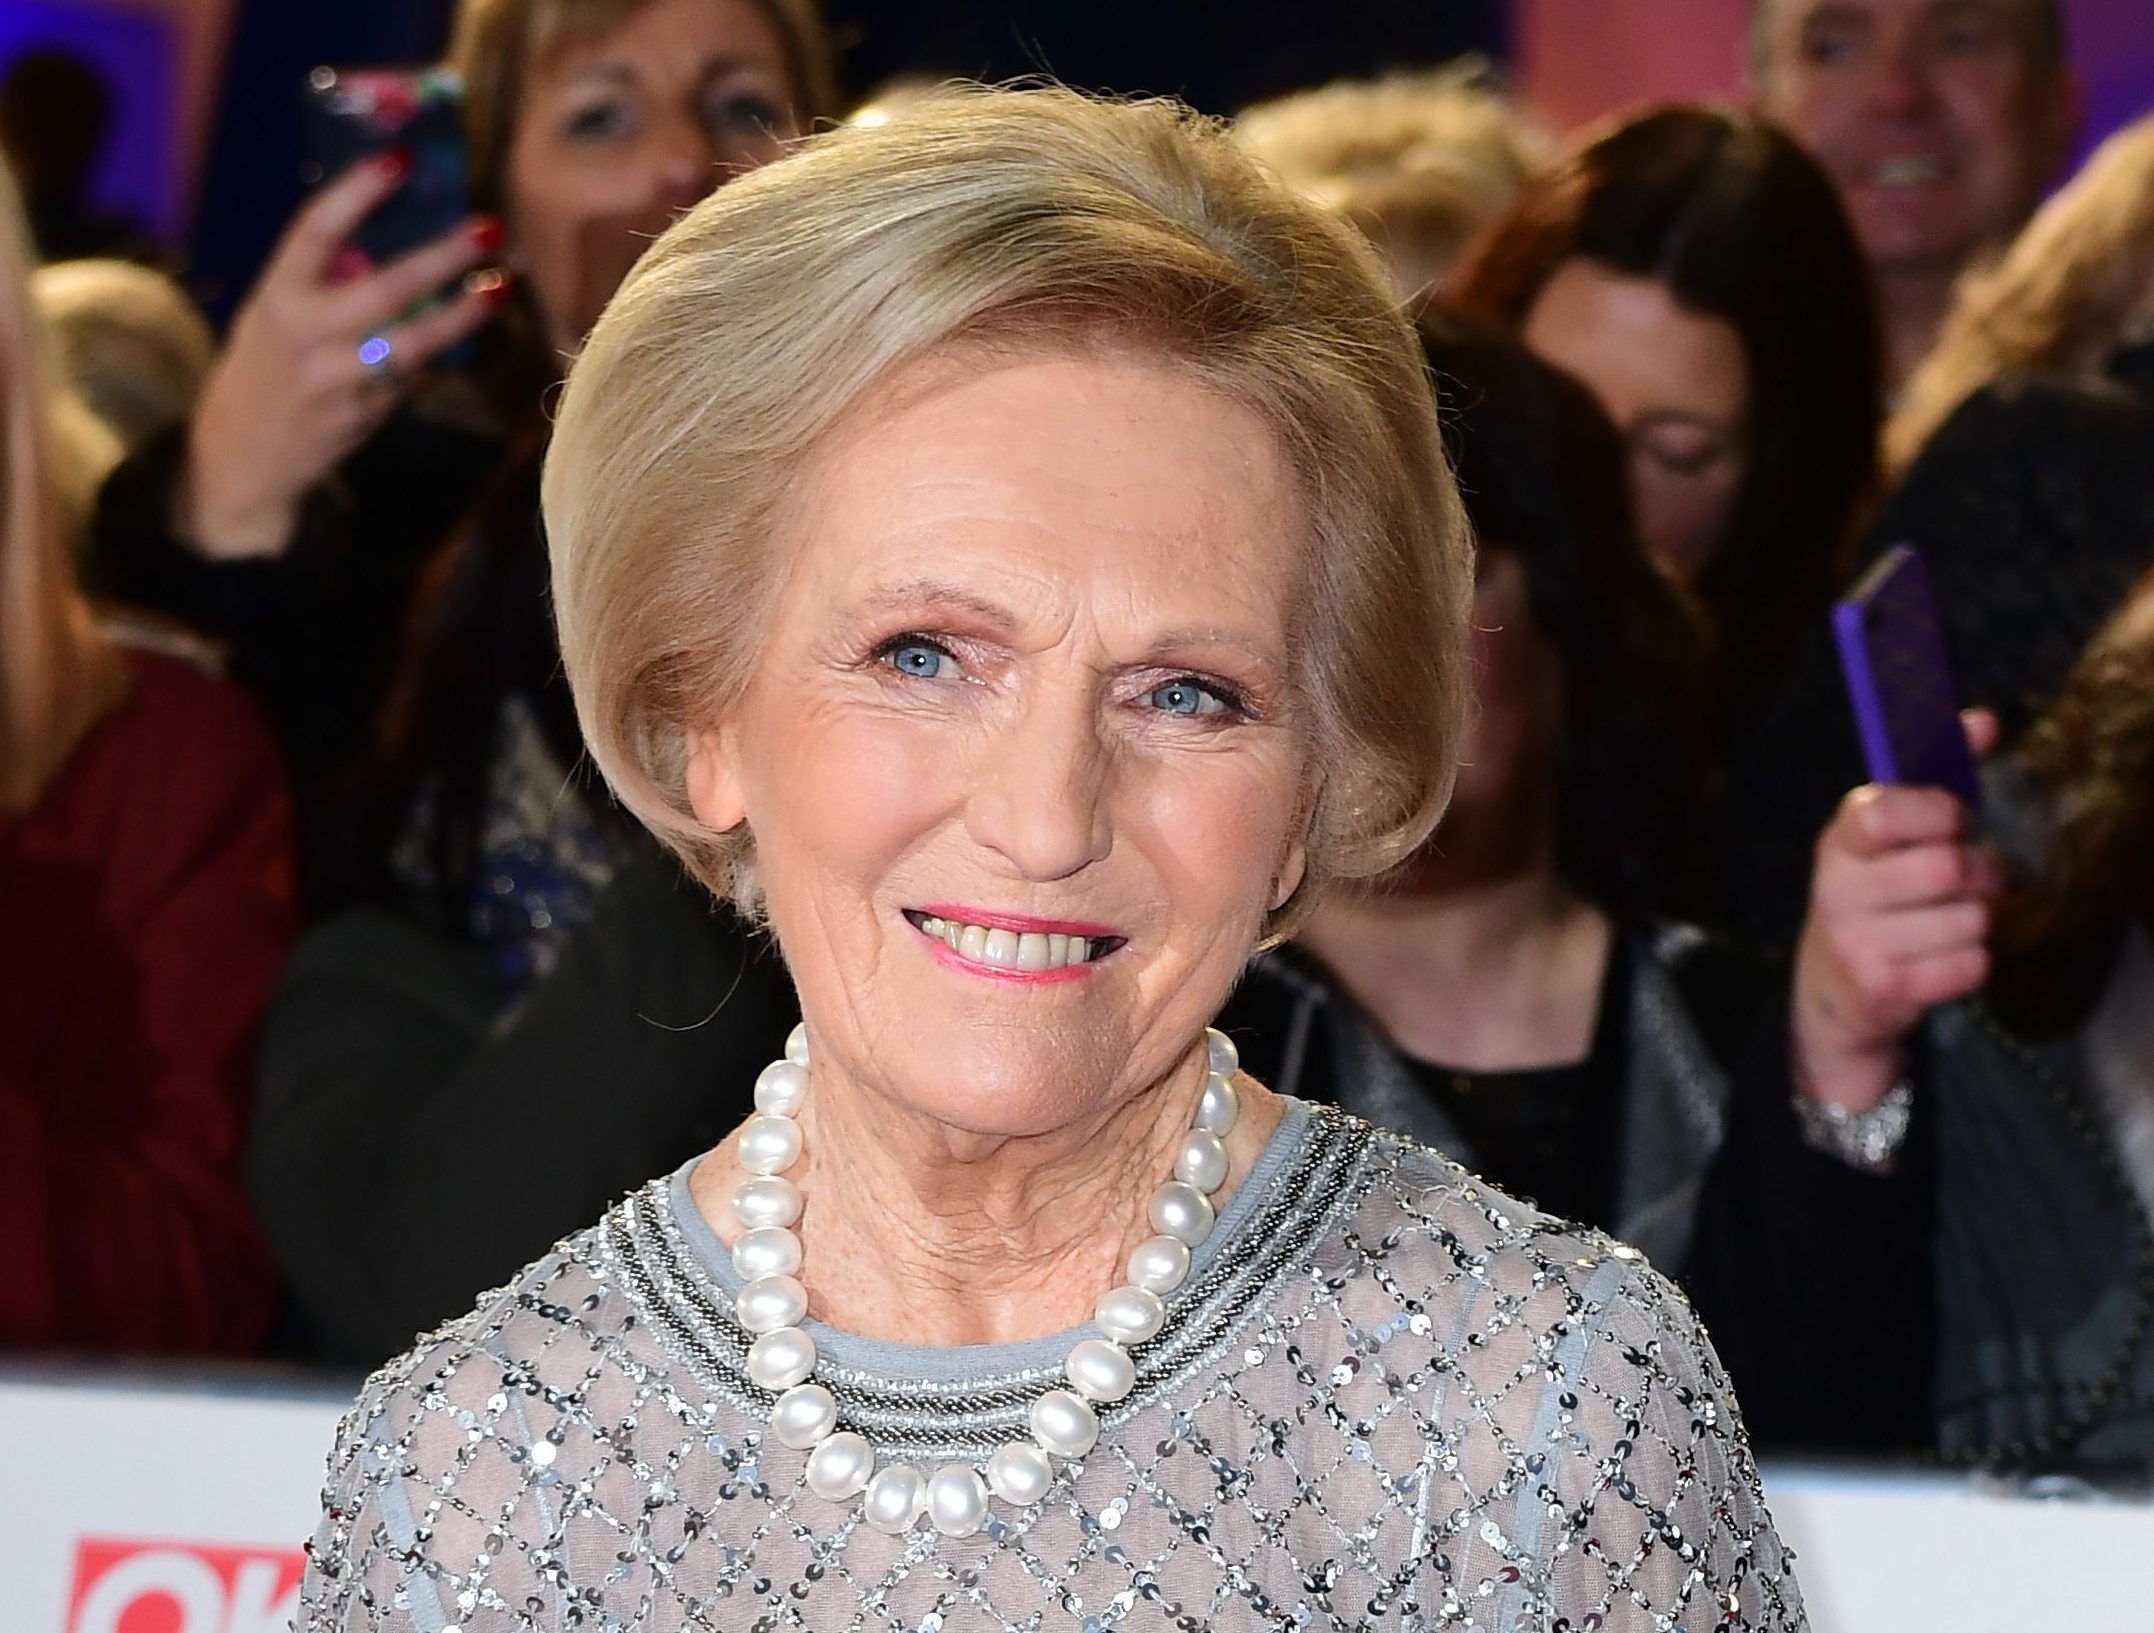 Mary Berry heaped praise on the show's Prue Leith - who replaced Berry on the popular programme after she quit when producers Love Productions announced they were leaving the BBC for Channel 4. (PA Wire)